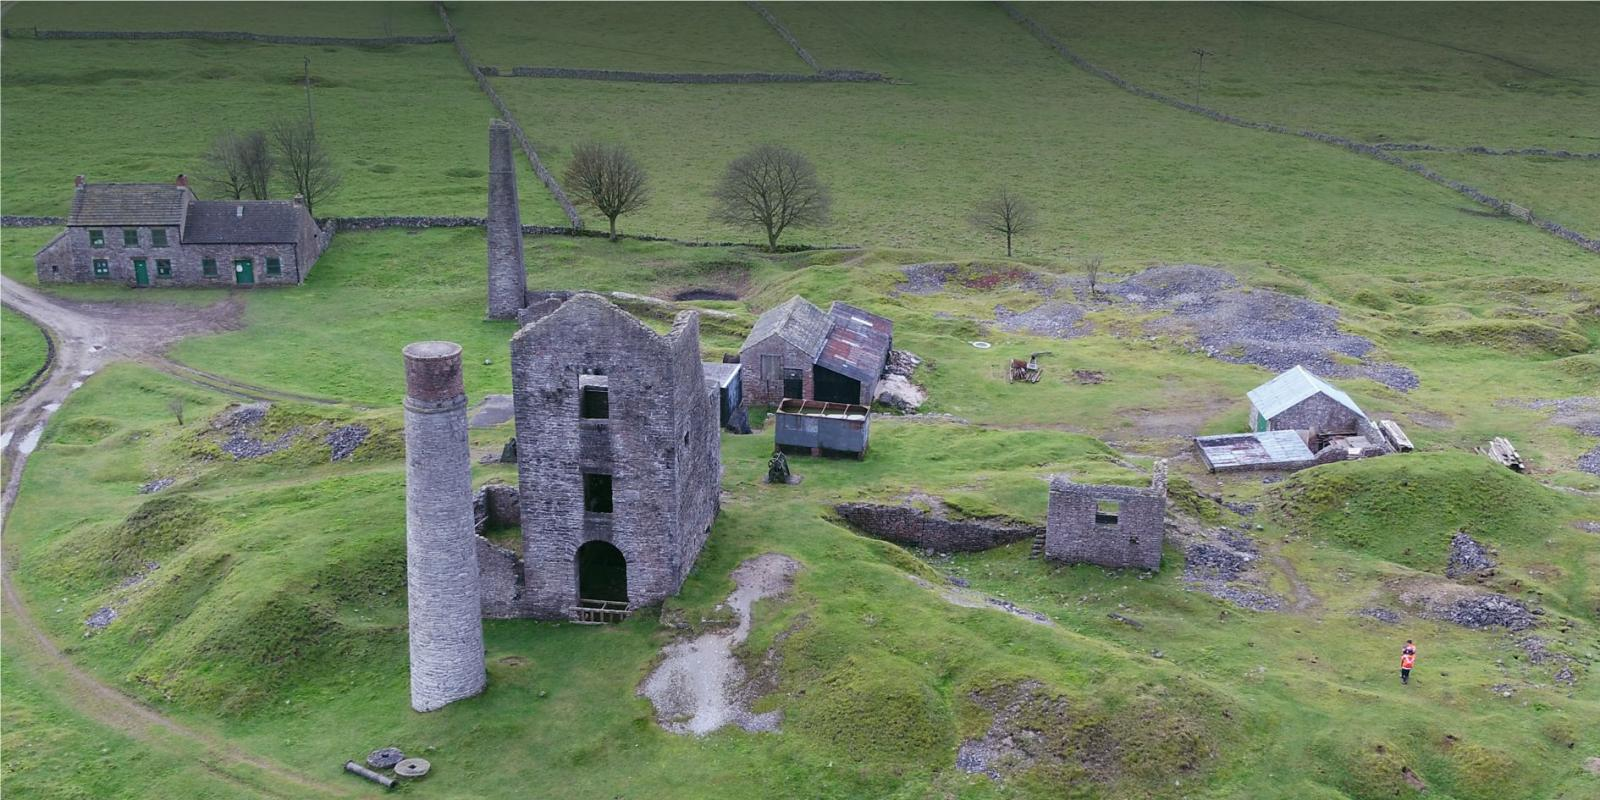 UAV image of heritage in the lanscape